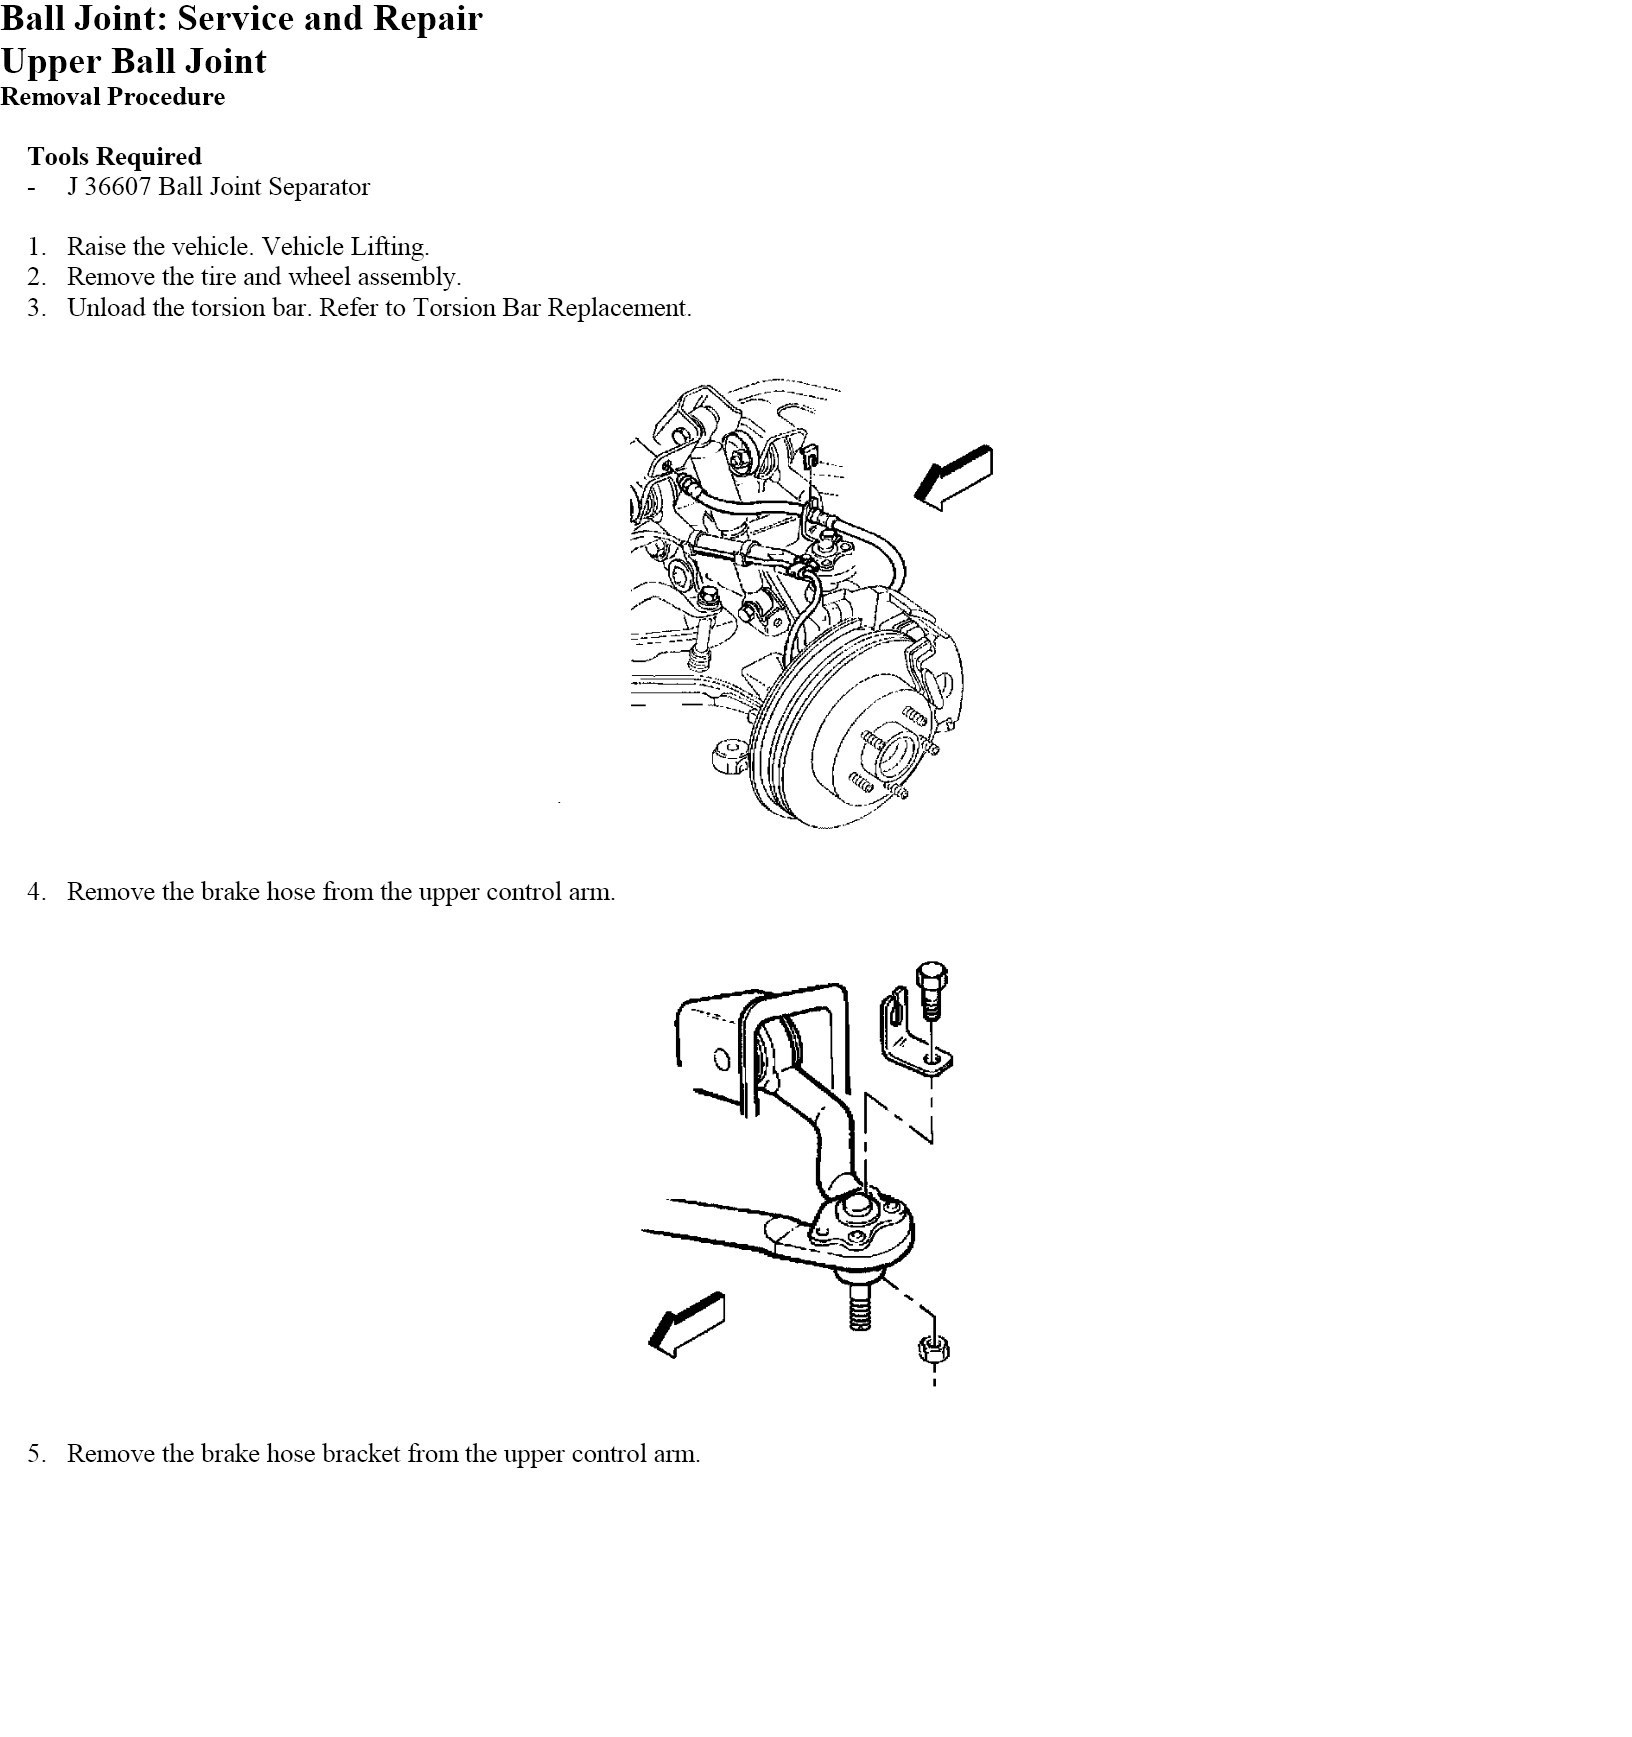 I Am Trying To Change The Ball Joints On A Gmc Safari Awd And Can Envoy Upper Joint Here Are Instructions For